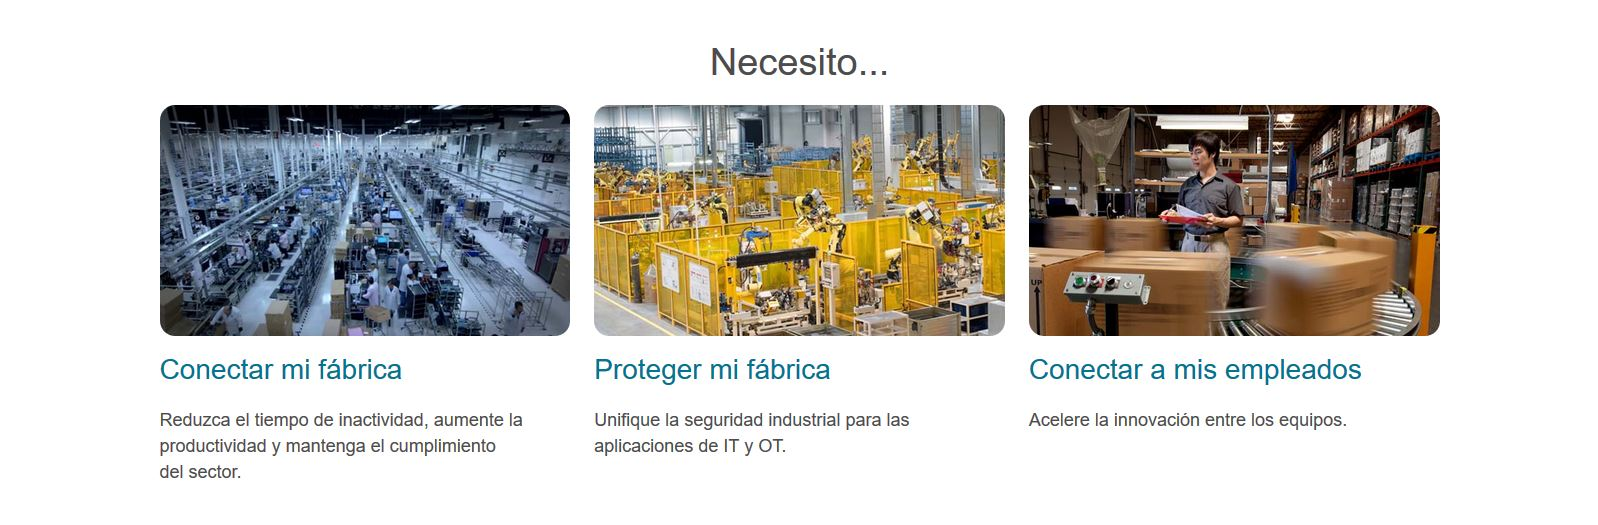 cisco-necesito-chile